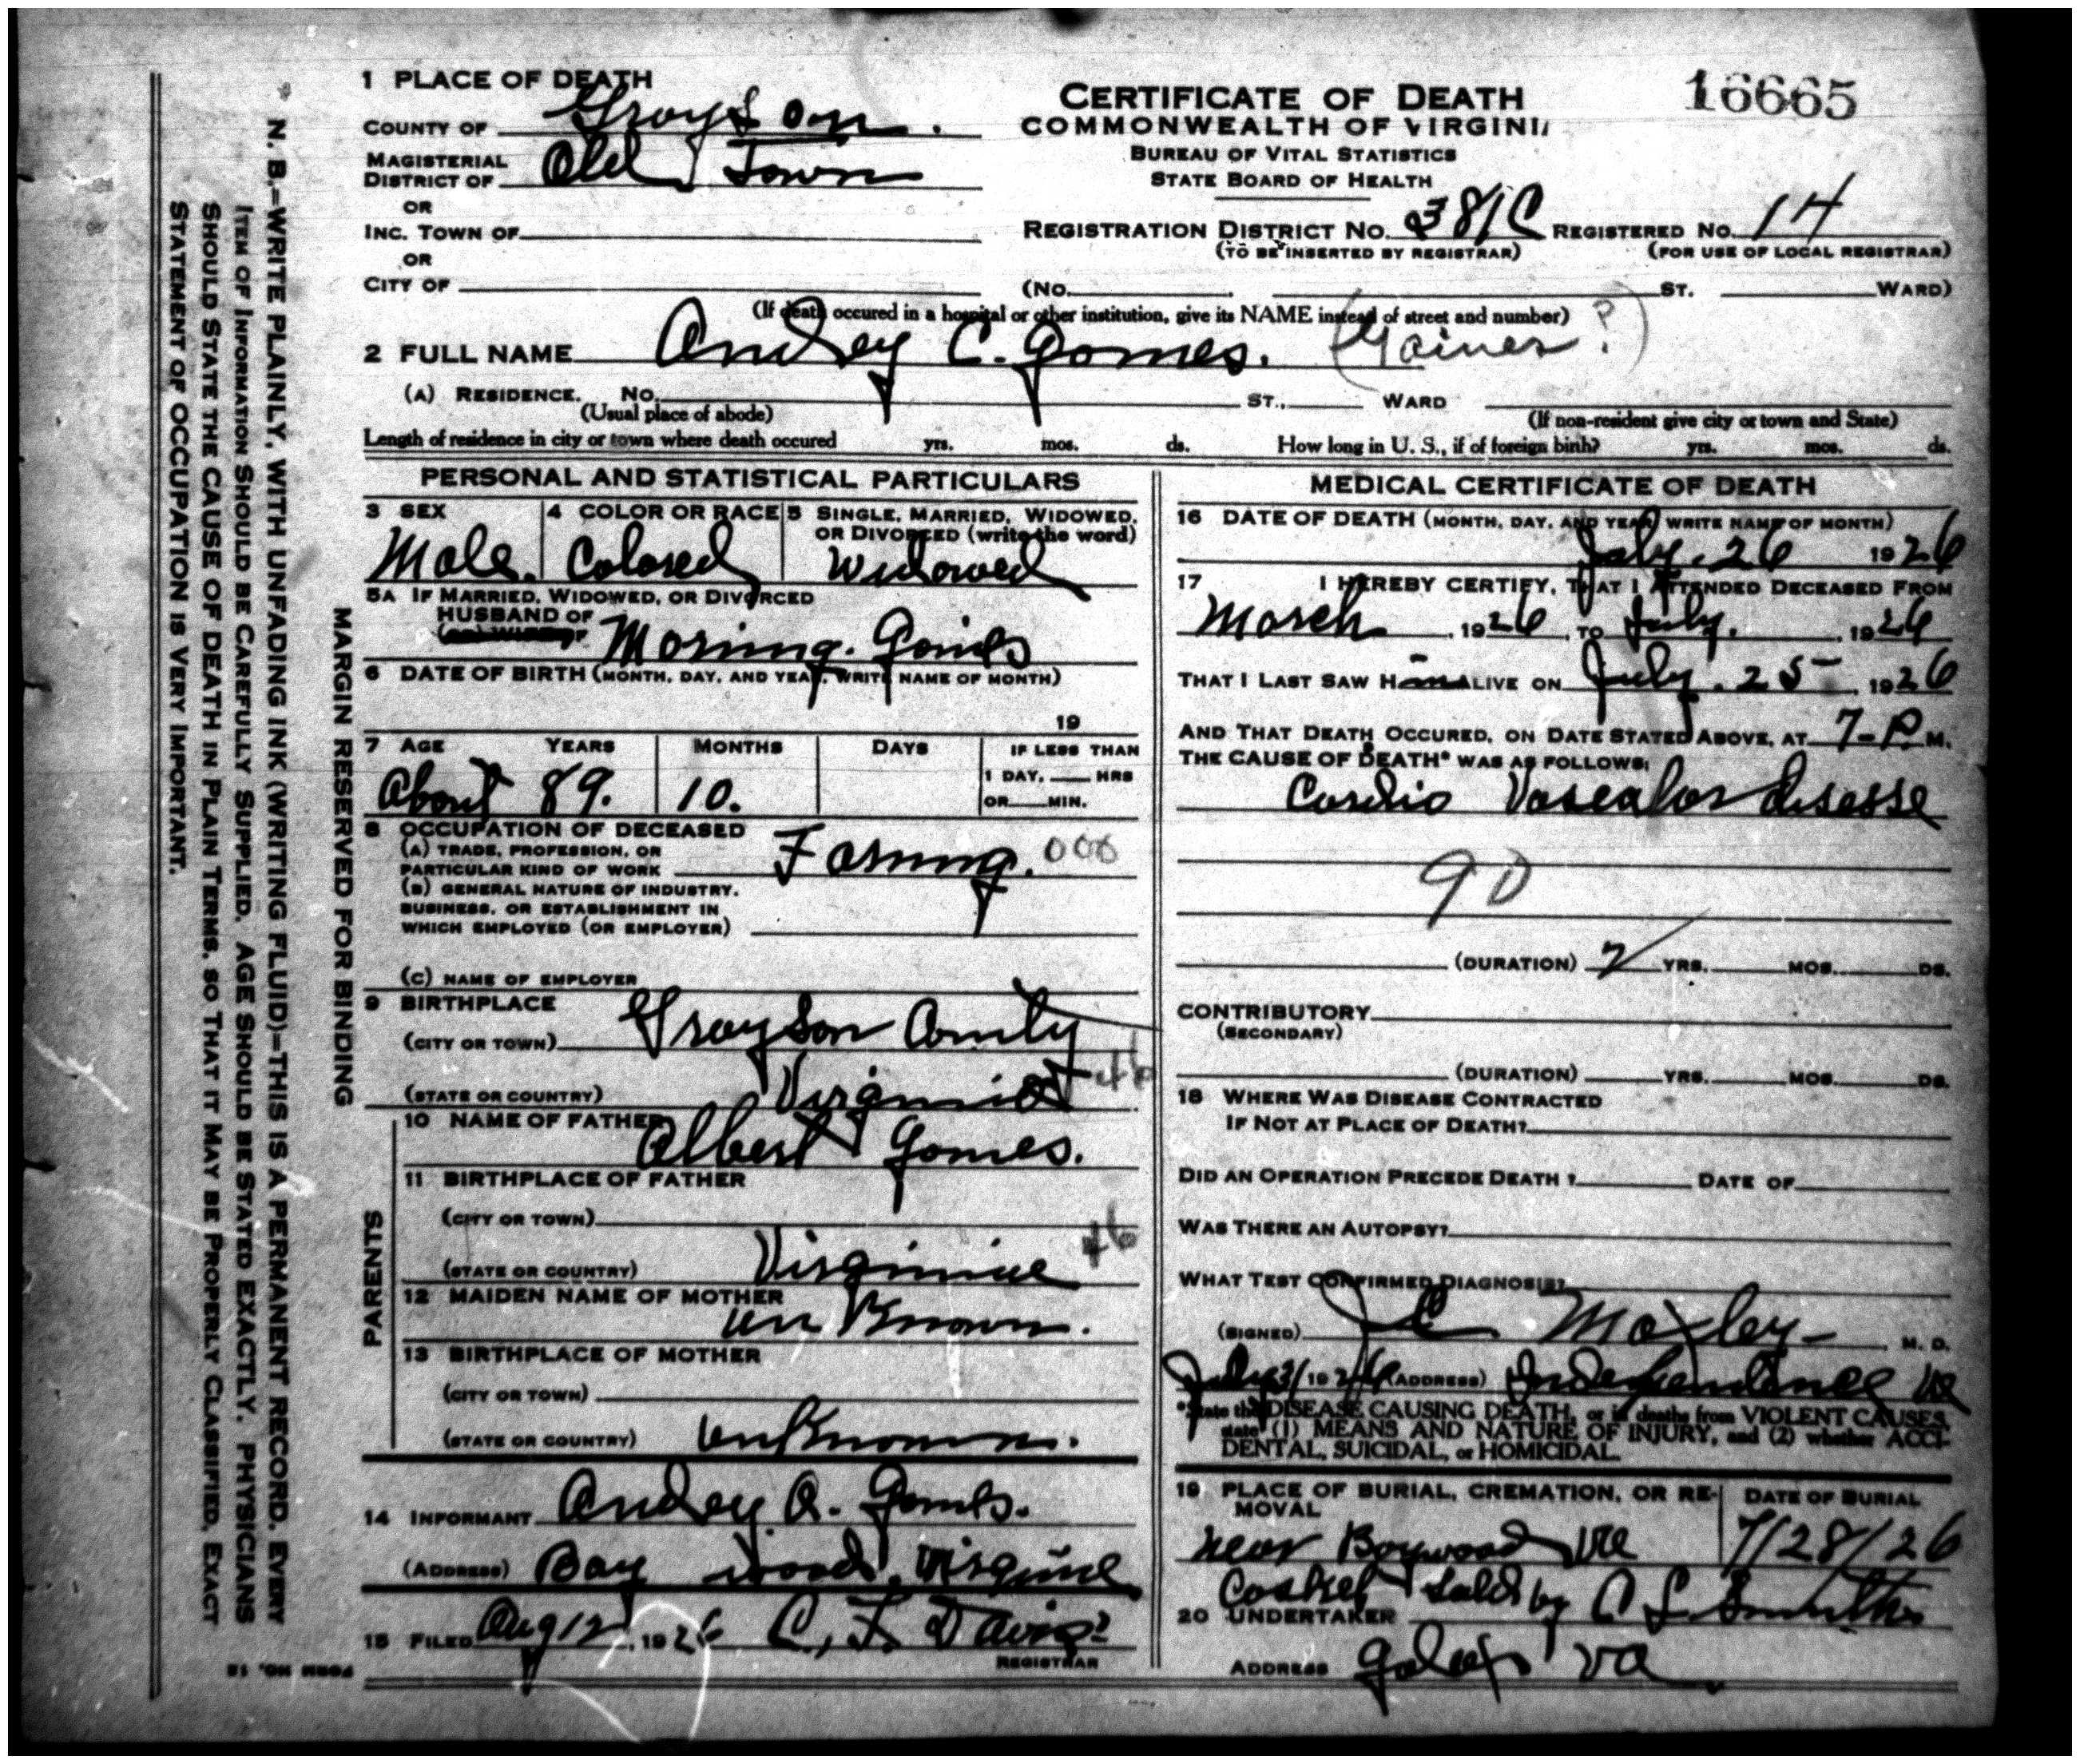 Andrew c andy goins 1837 1926 find a grave memorial 1926 virginia death certificate for andrew c goins from the library of virginia richmond va aiddatafo Images